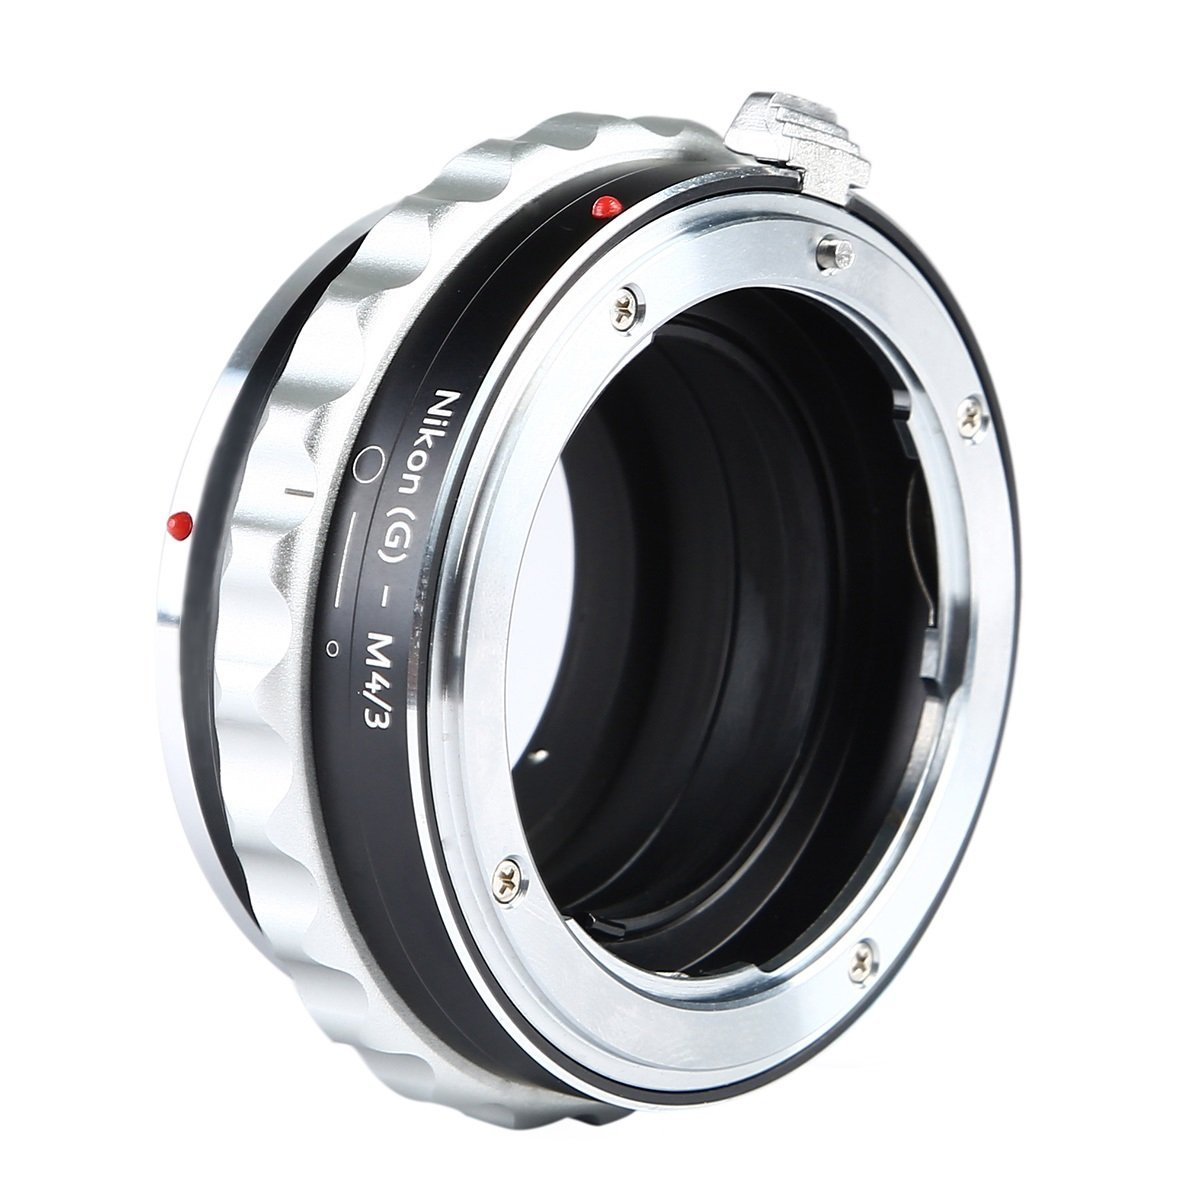 Adapter to Convert Nikon F-Mount Lens to MFT Lens for Mirrorless Micro Four Thirds M4//3 Digital Camera D and G Type Lens